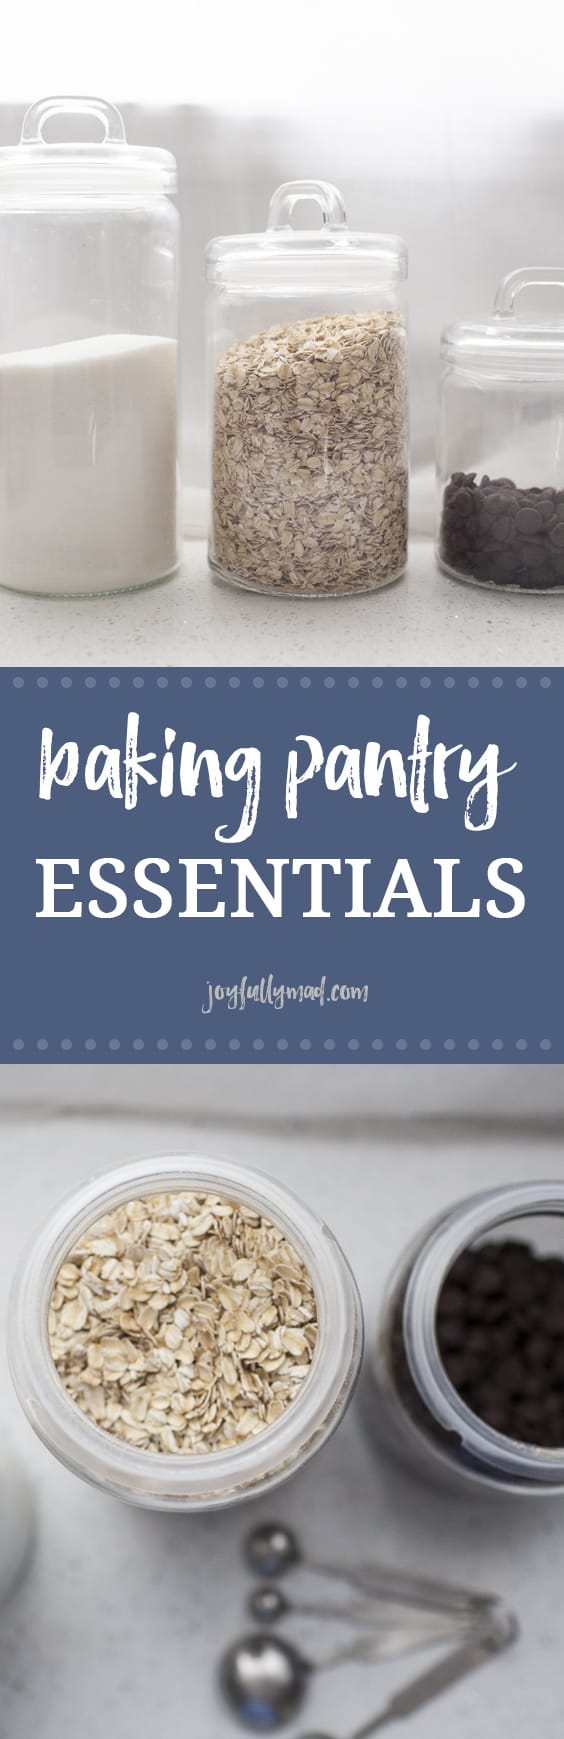 Whether you bake often or just once in a blue moon, there are some baking pantry essentials you should always have on hand to make sure that you're able to bake everything from bread, to muffins, to cookies, whenever the mood strikes! These are the baking pantry essentials every kitchen should be stocked with!